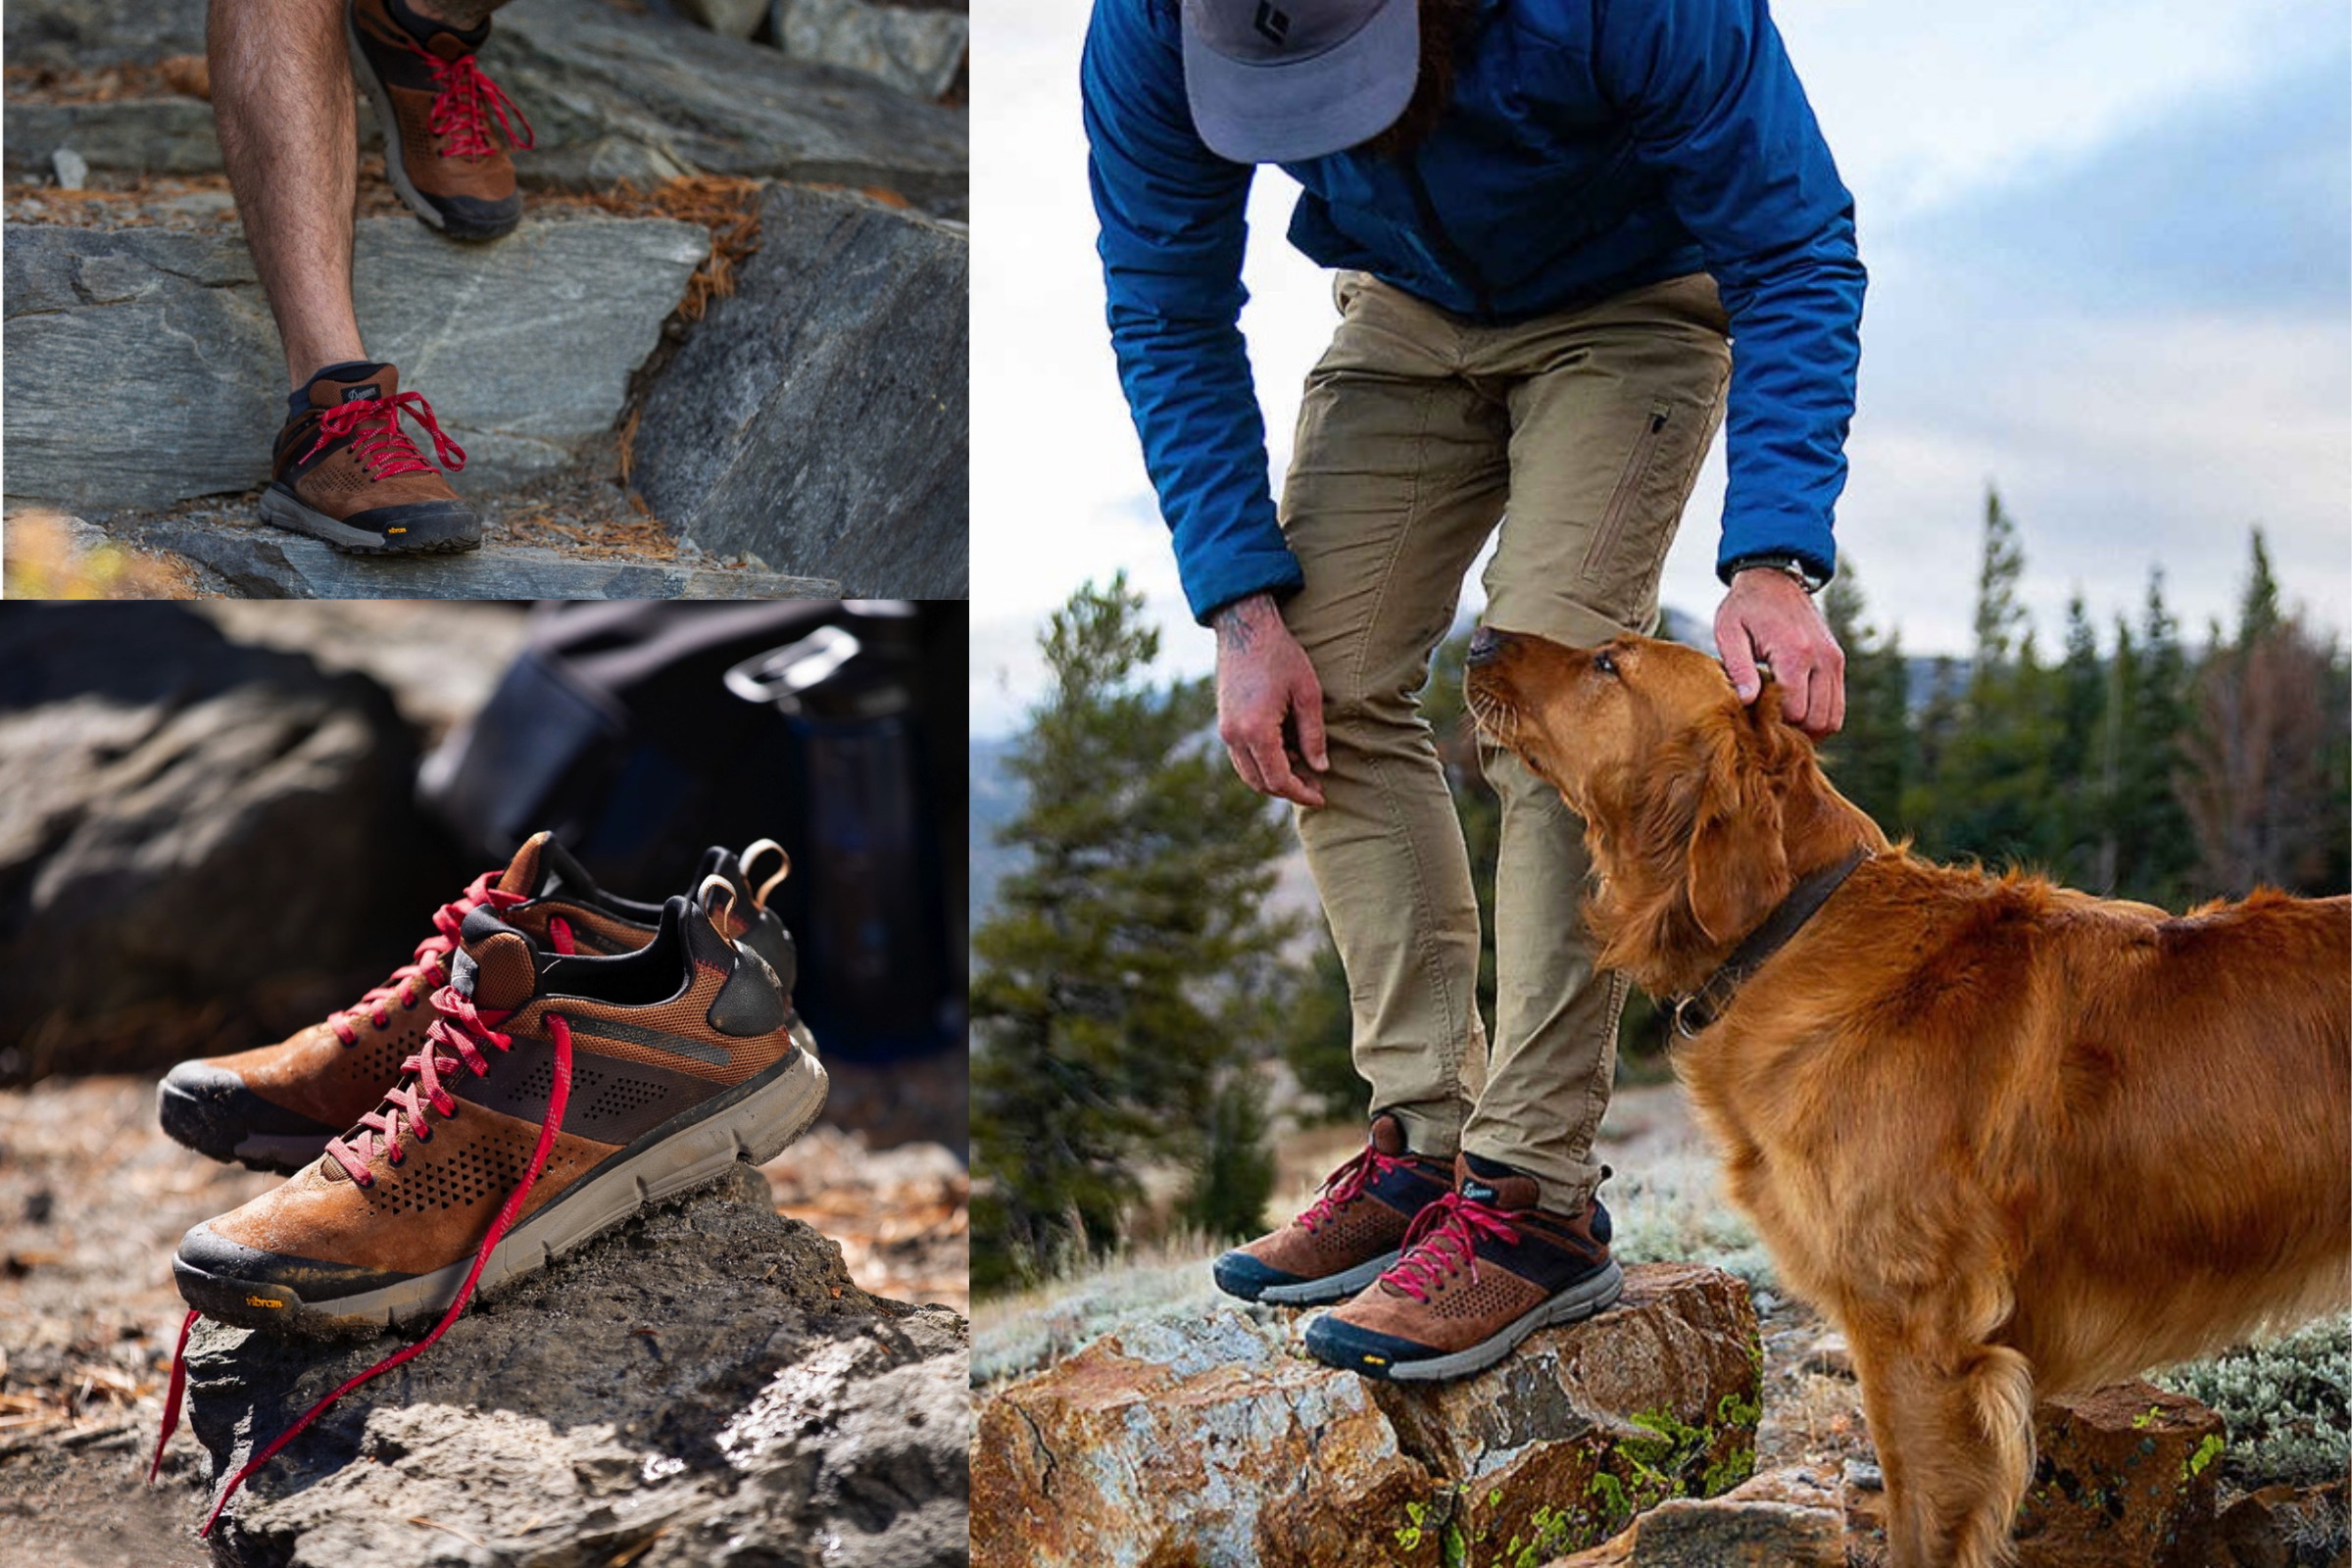 A look at the Danner Trail 2650 hiking shoes